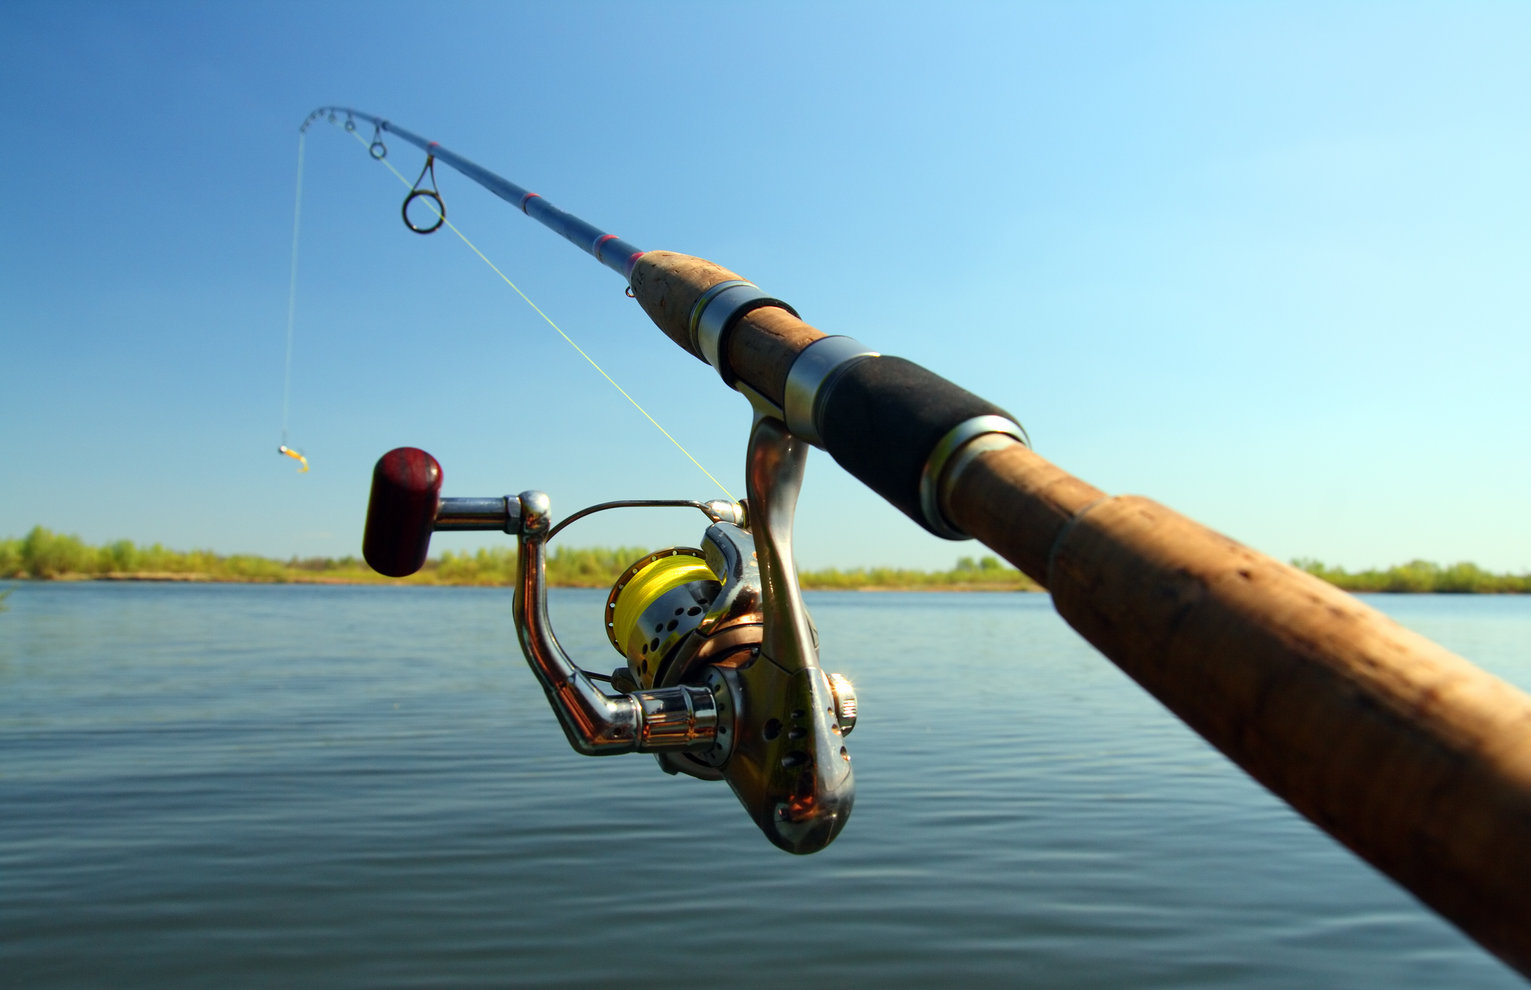 a closeup of a fishing rod with a lake in the background